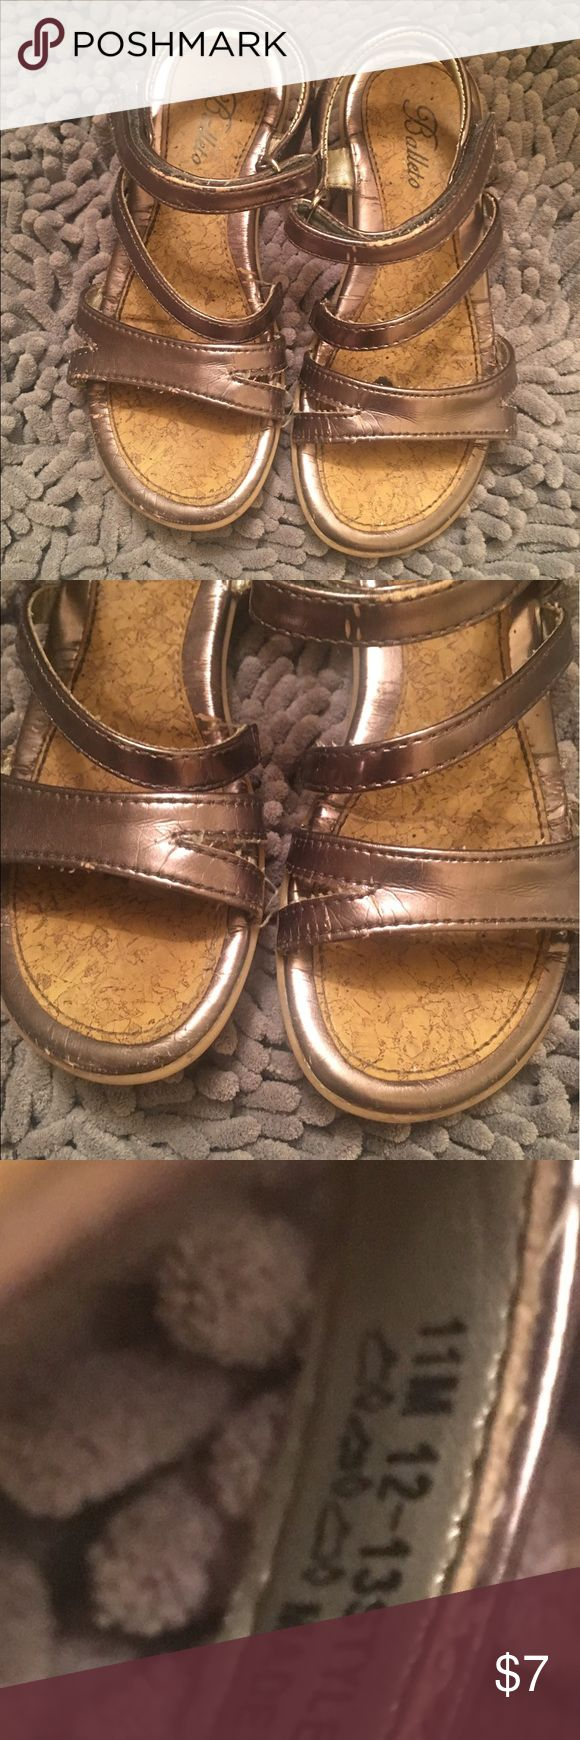 Girls size 11 silver sandals Quality made sandals. They have some use but in good condition. The only noticeable wear is by the ankle bone strap where the foiling has worn off and minimal wearing on toes as shown in pictures and only noticeable close up. Balleto Shoes Sandals & Flip Flops